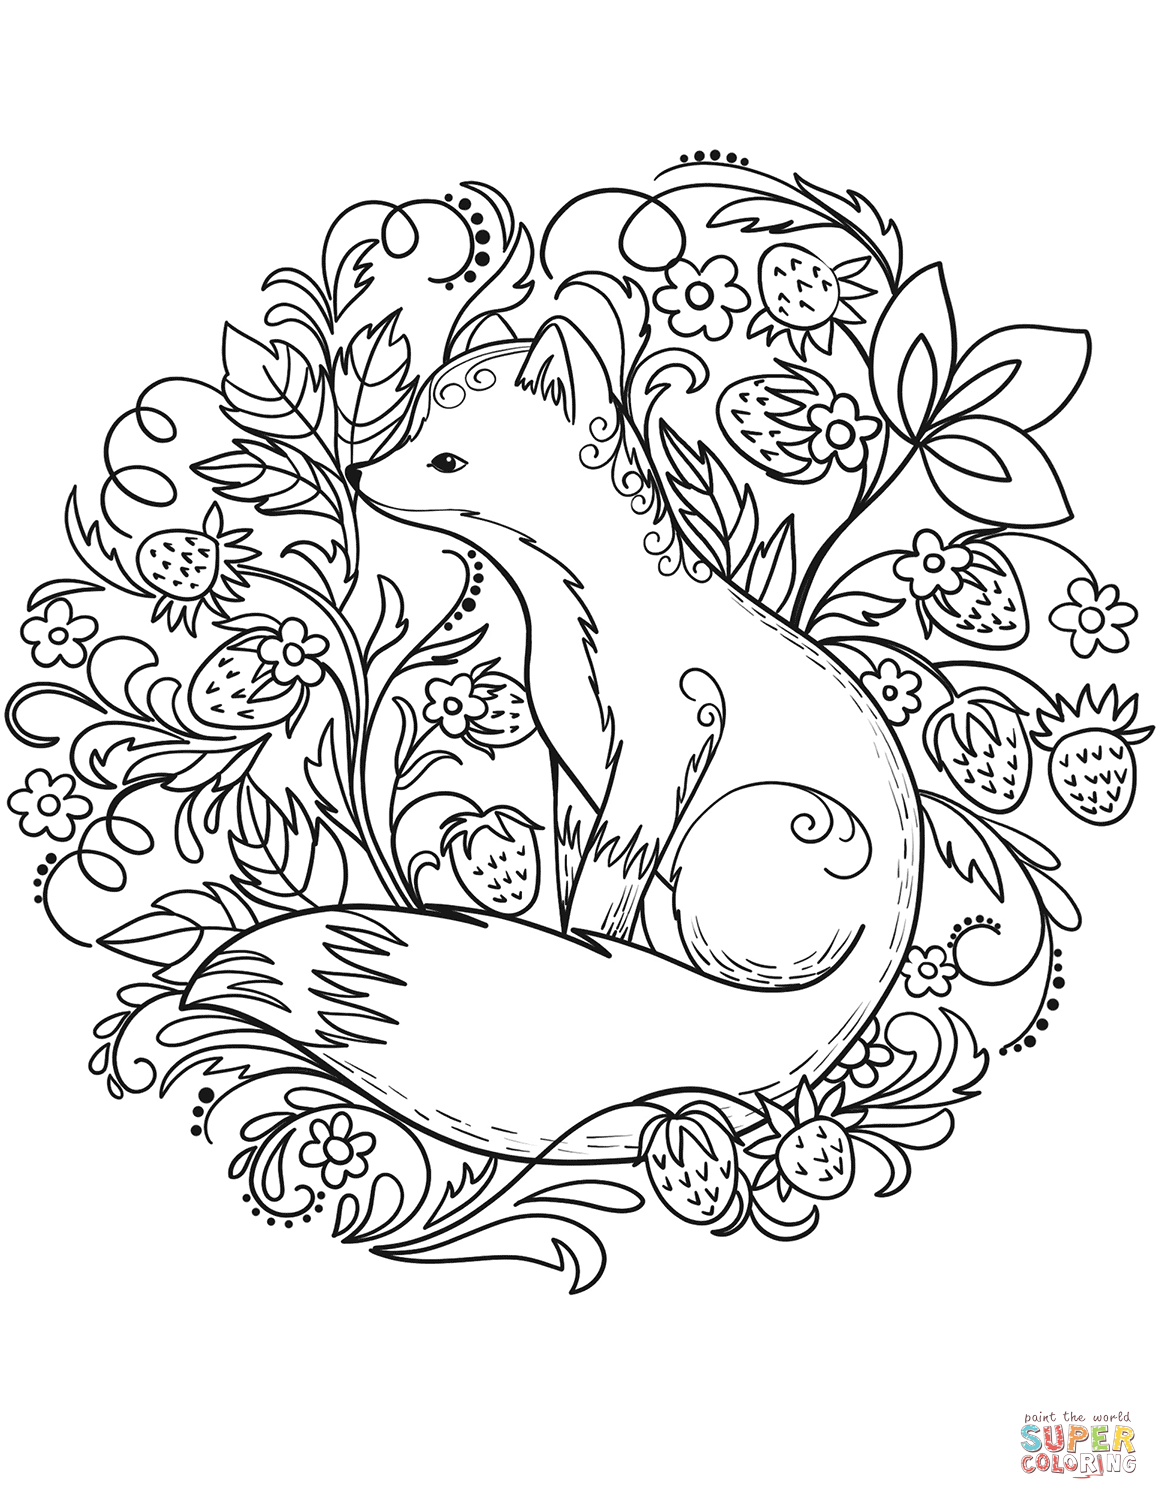 Fox Coloring Page Valentine Coloring Pages Valentine Coloring Coloring Pages Bible Coloring Pages Fox Coloring Page Coloring Pages Unicorn Coloring Pages